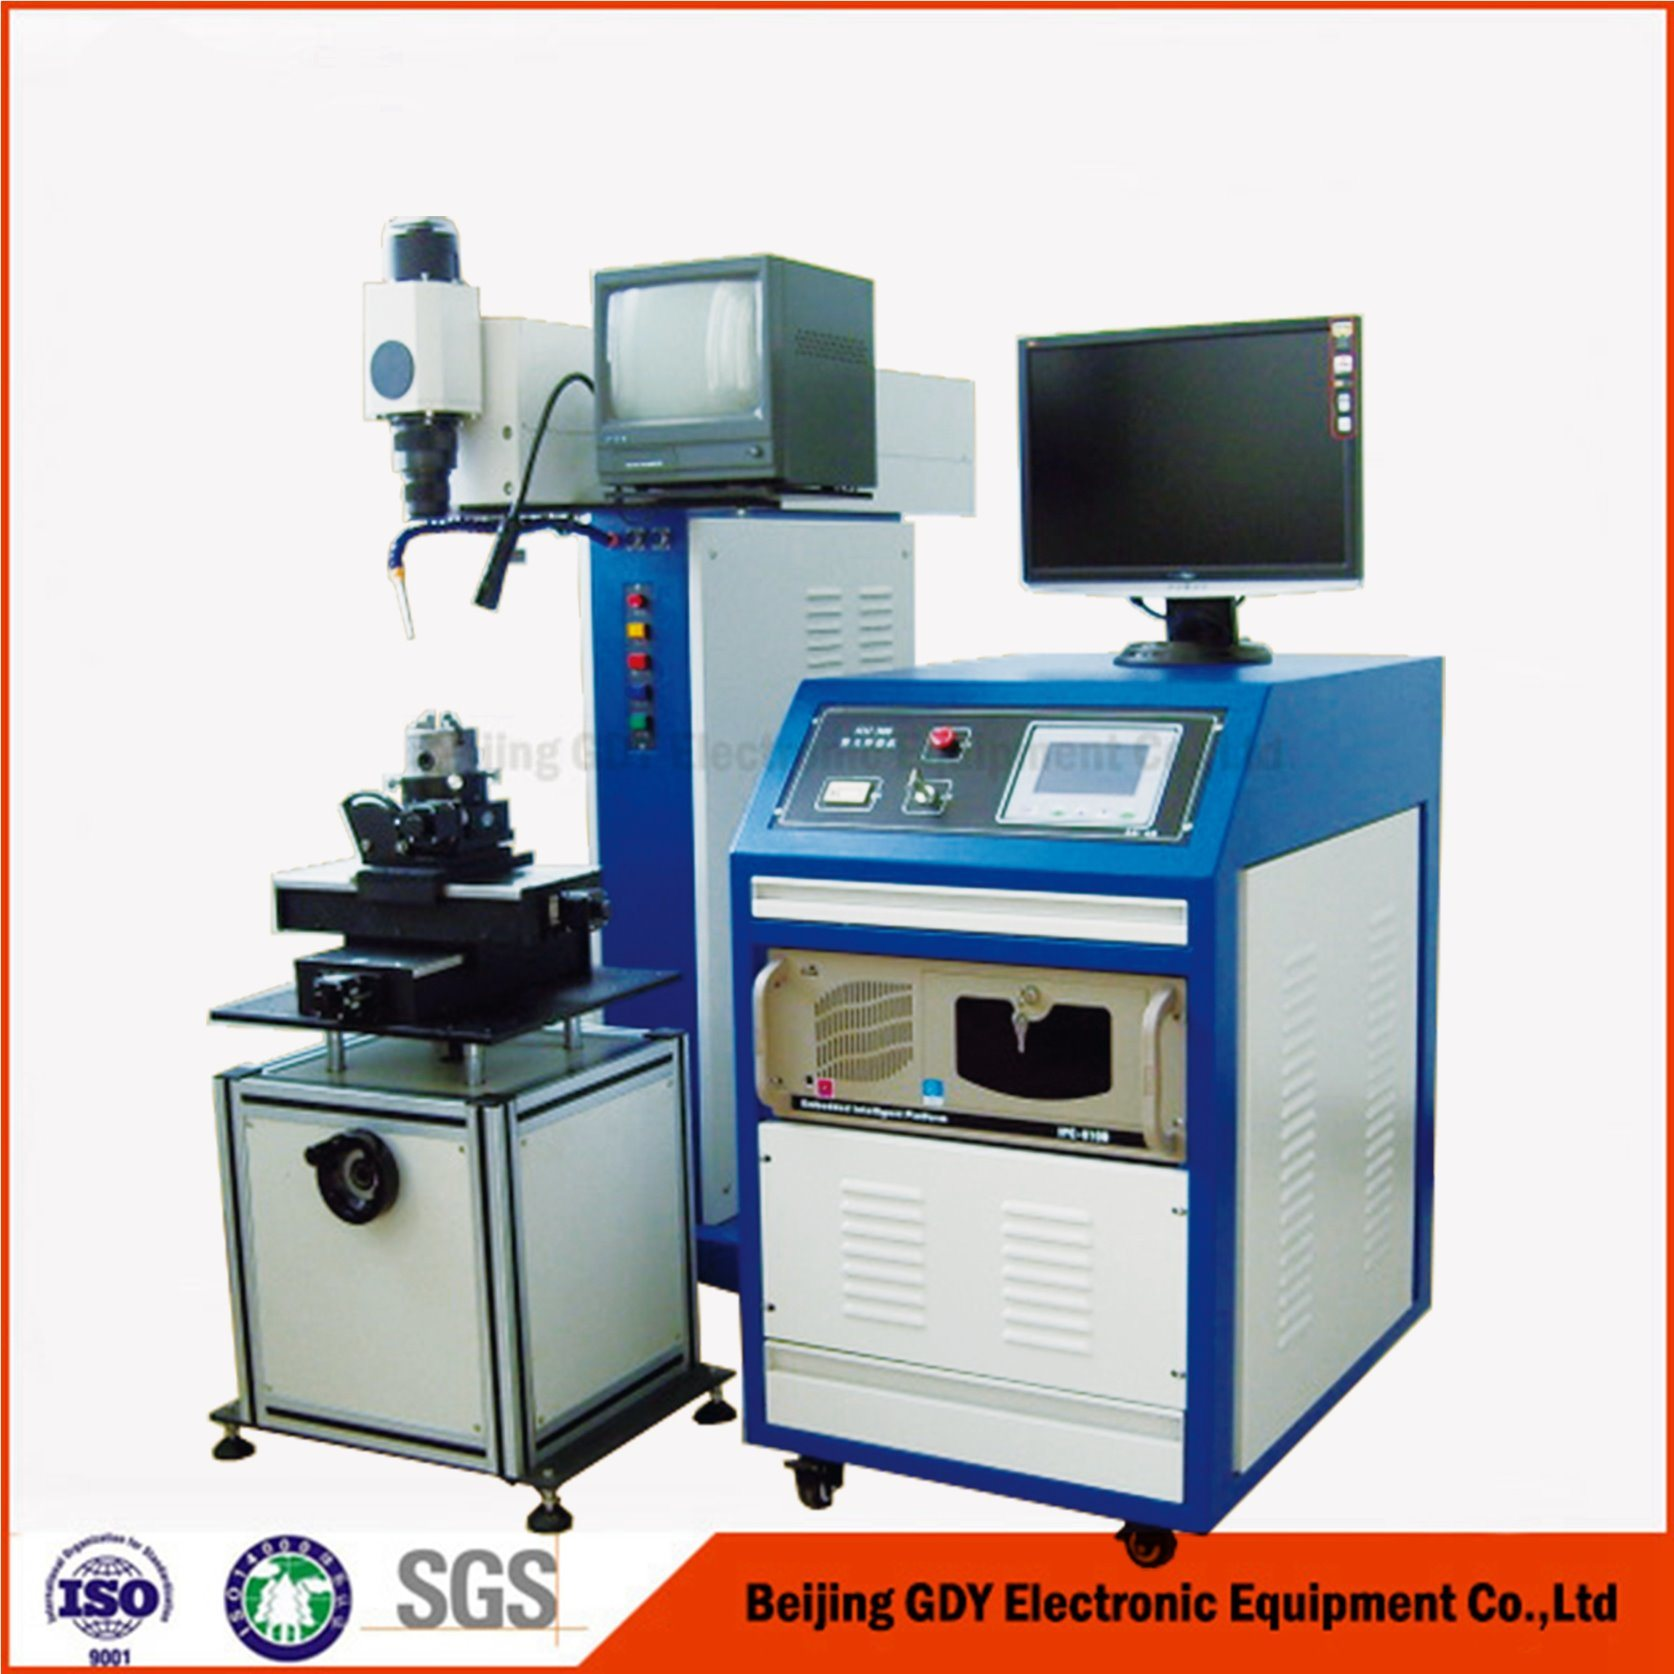 Dedicated Laser Welding Machine for Diaphragm